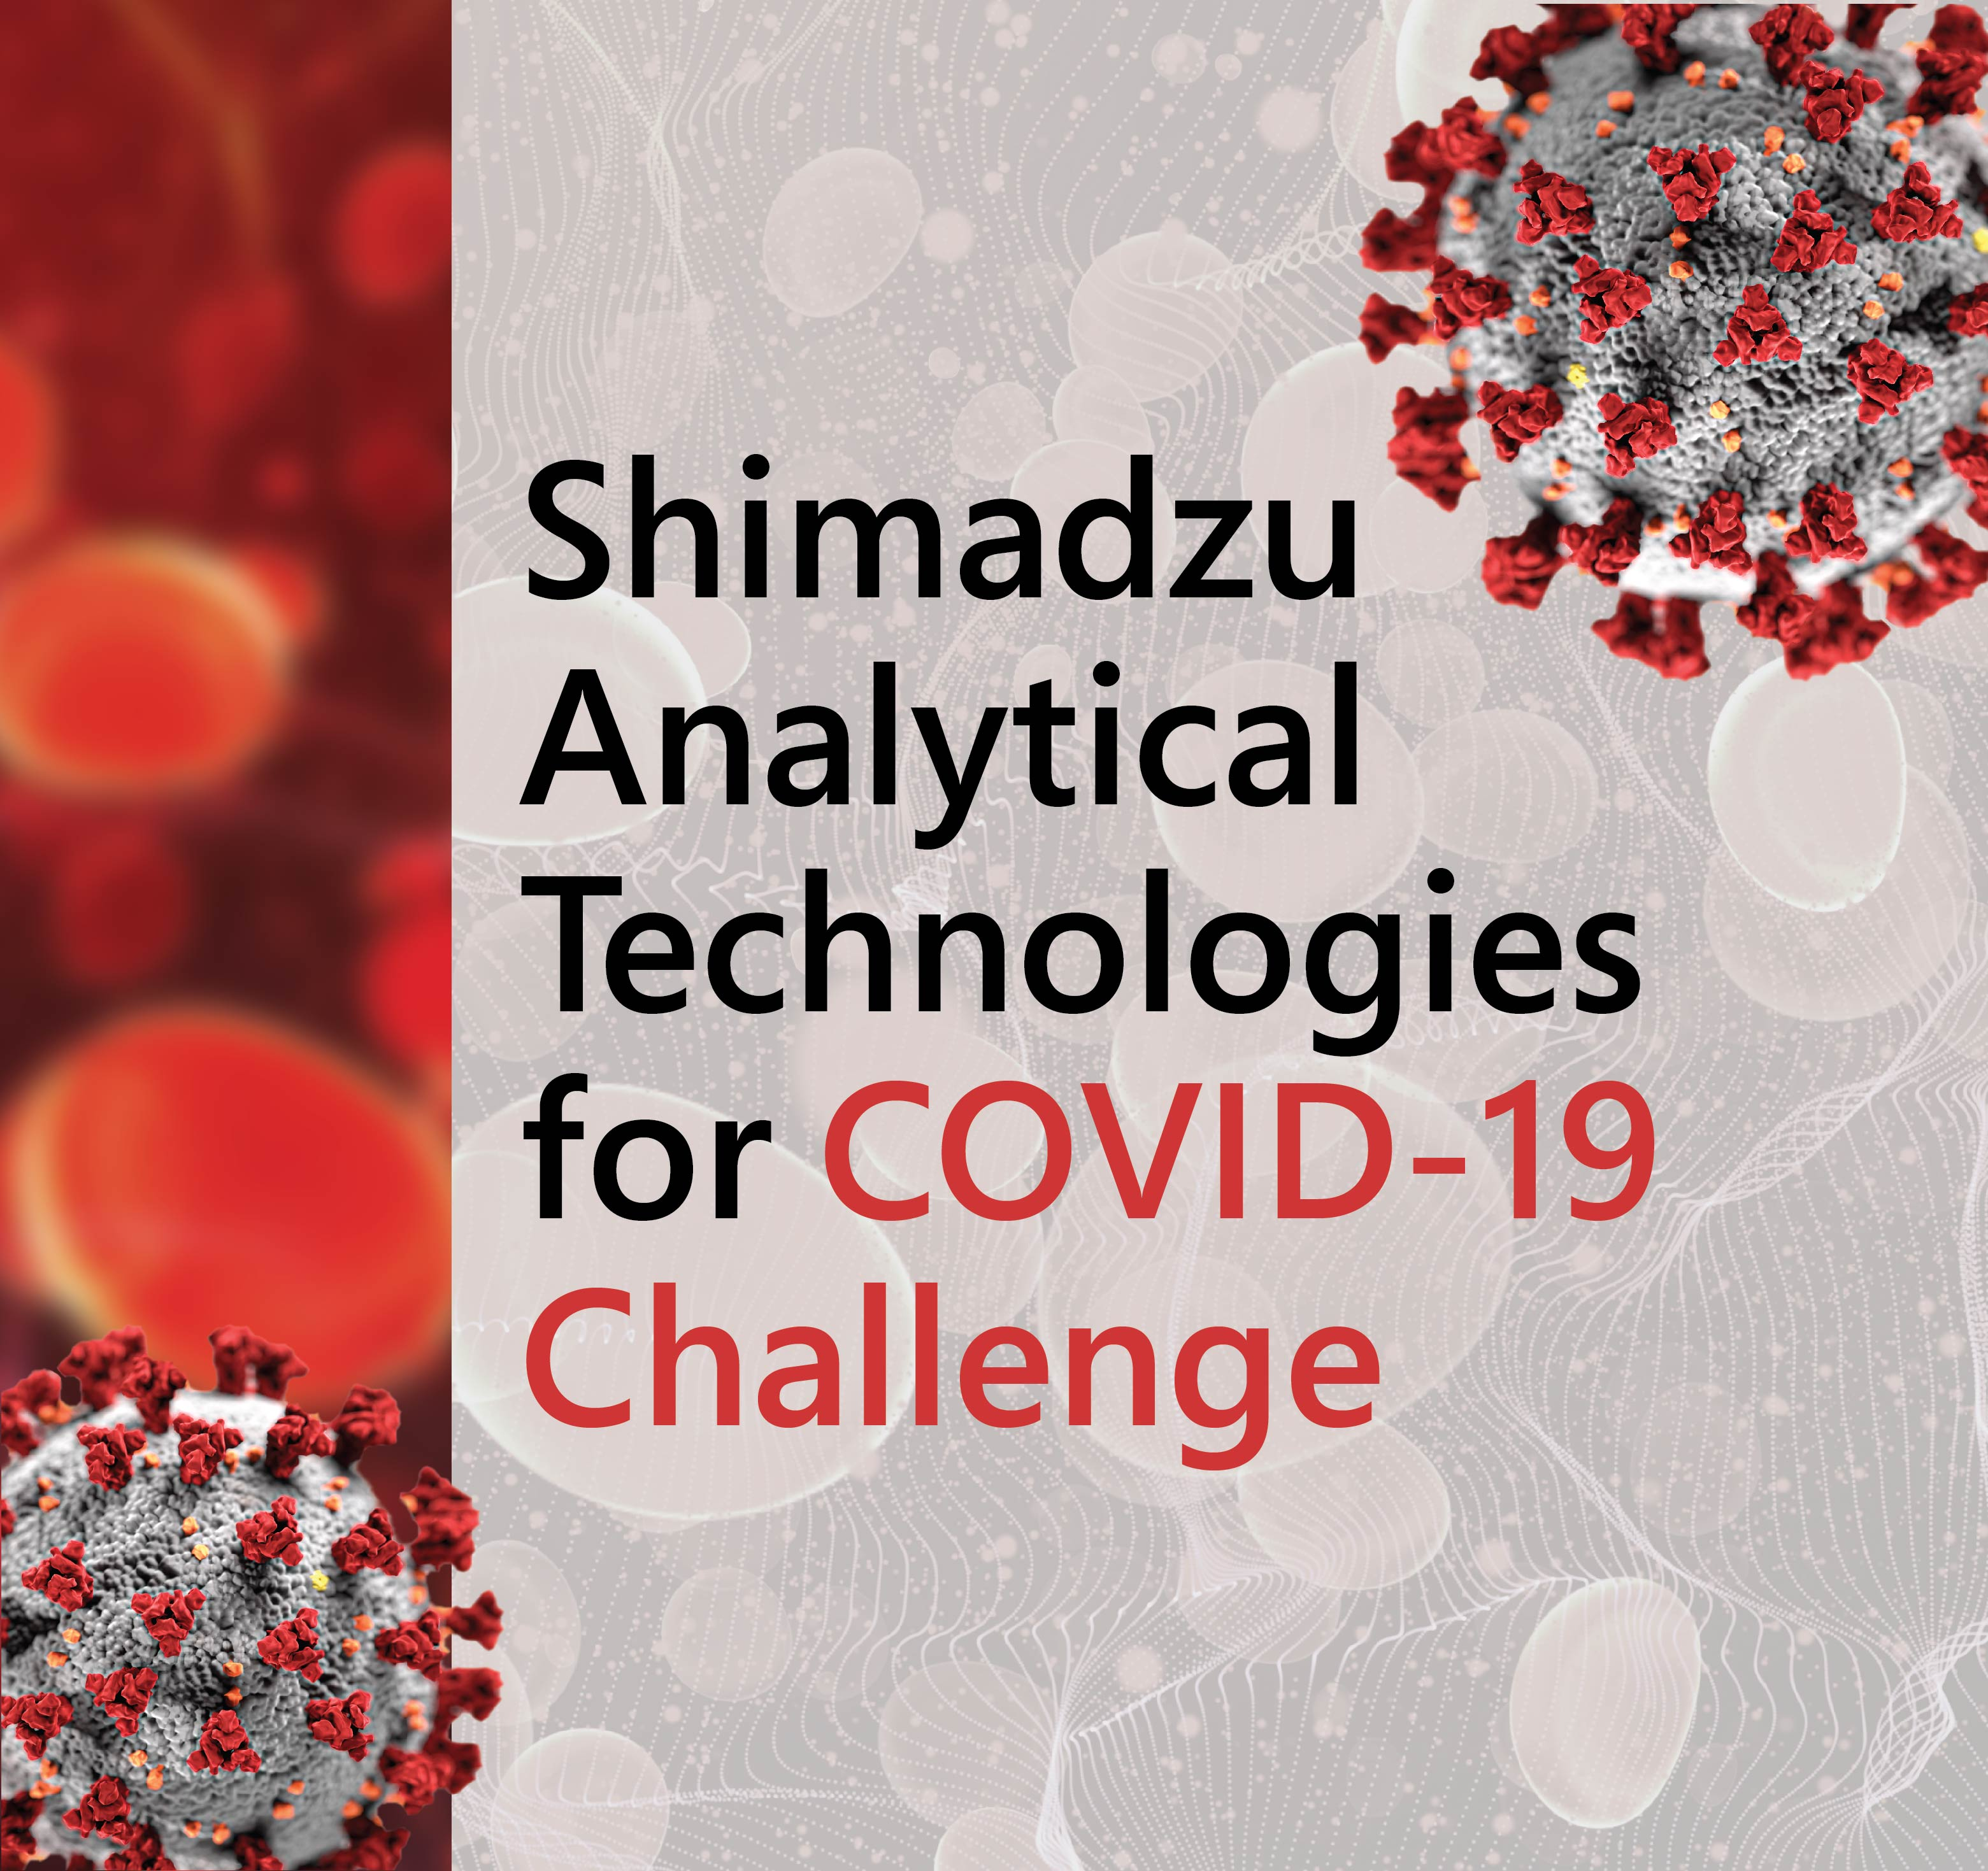 Click here to view Shimadzu Analytical Technologies For COVID-19